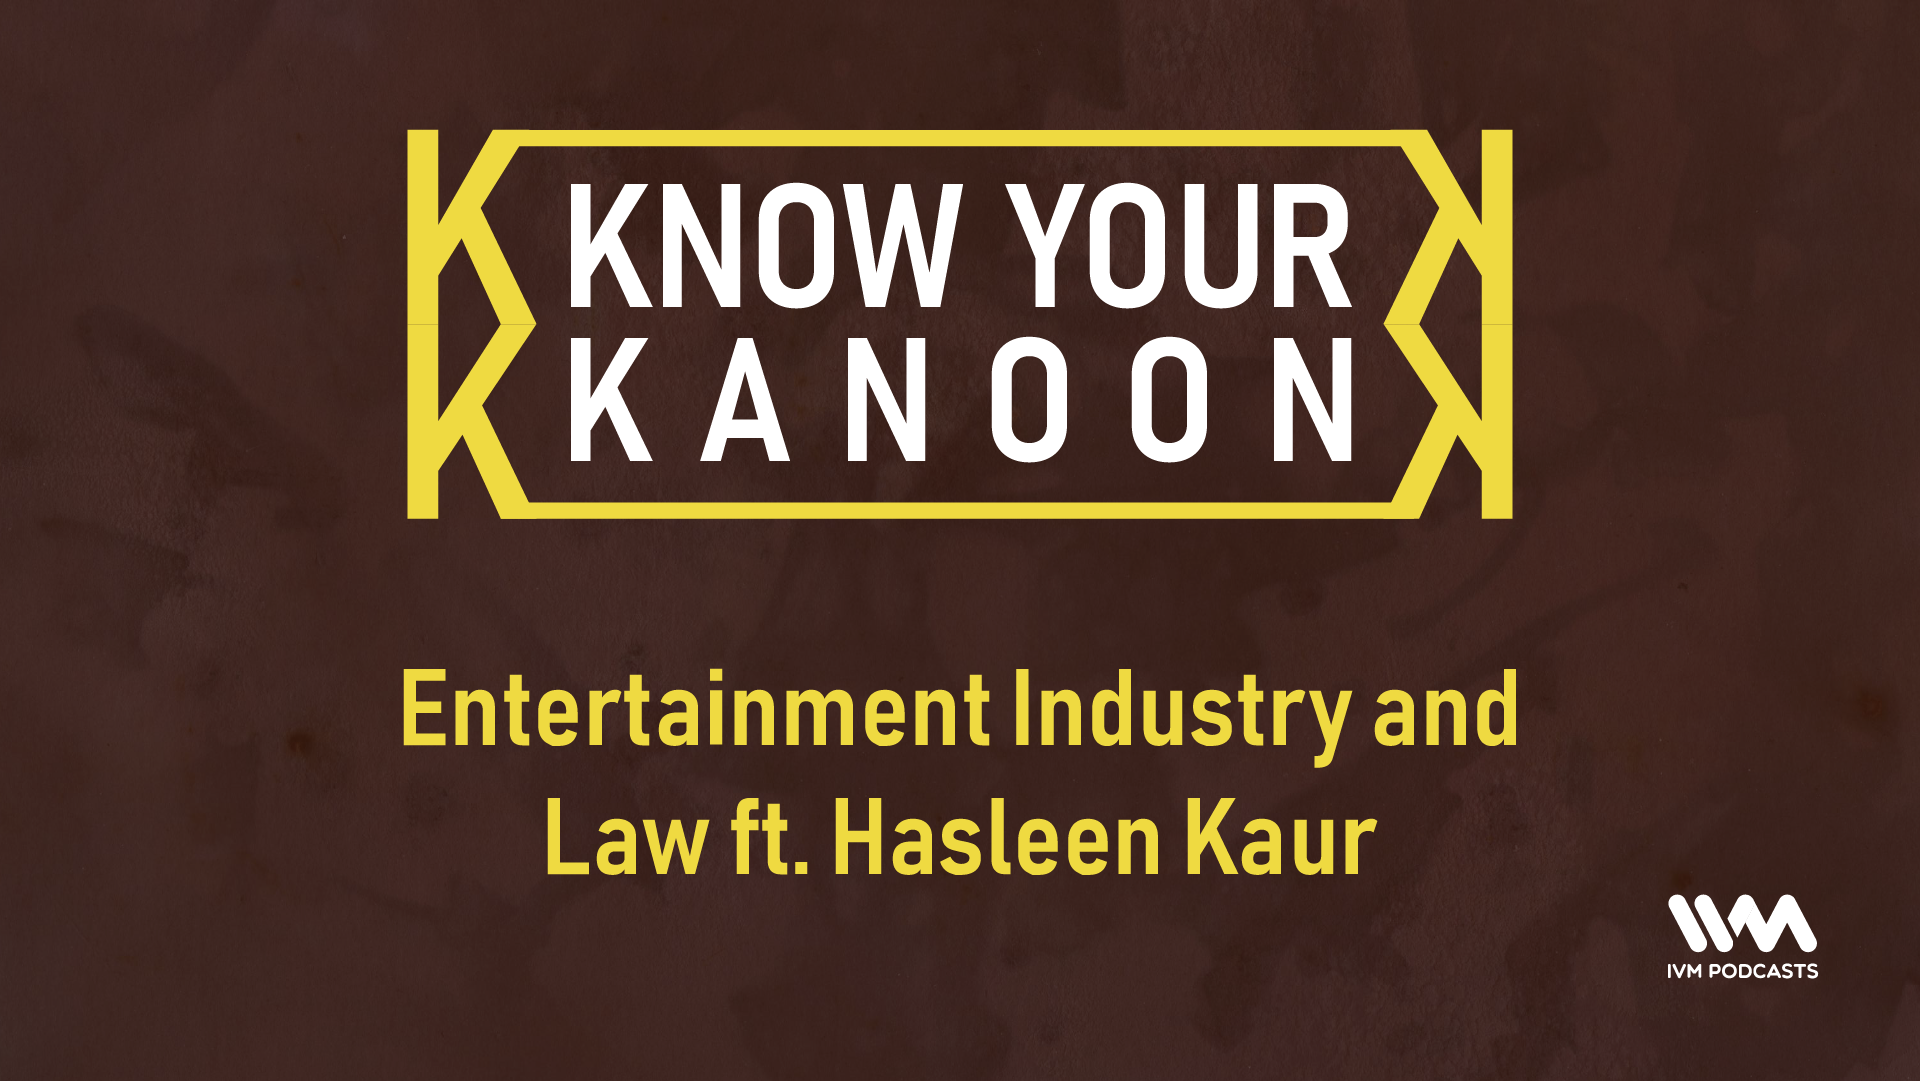 KnowYourKanoonEpisode26.png